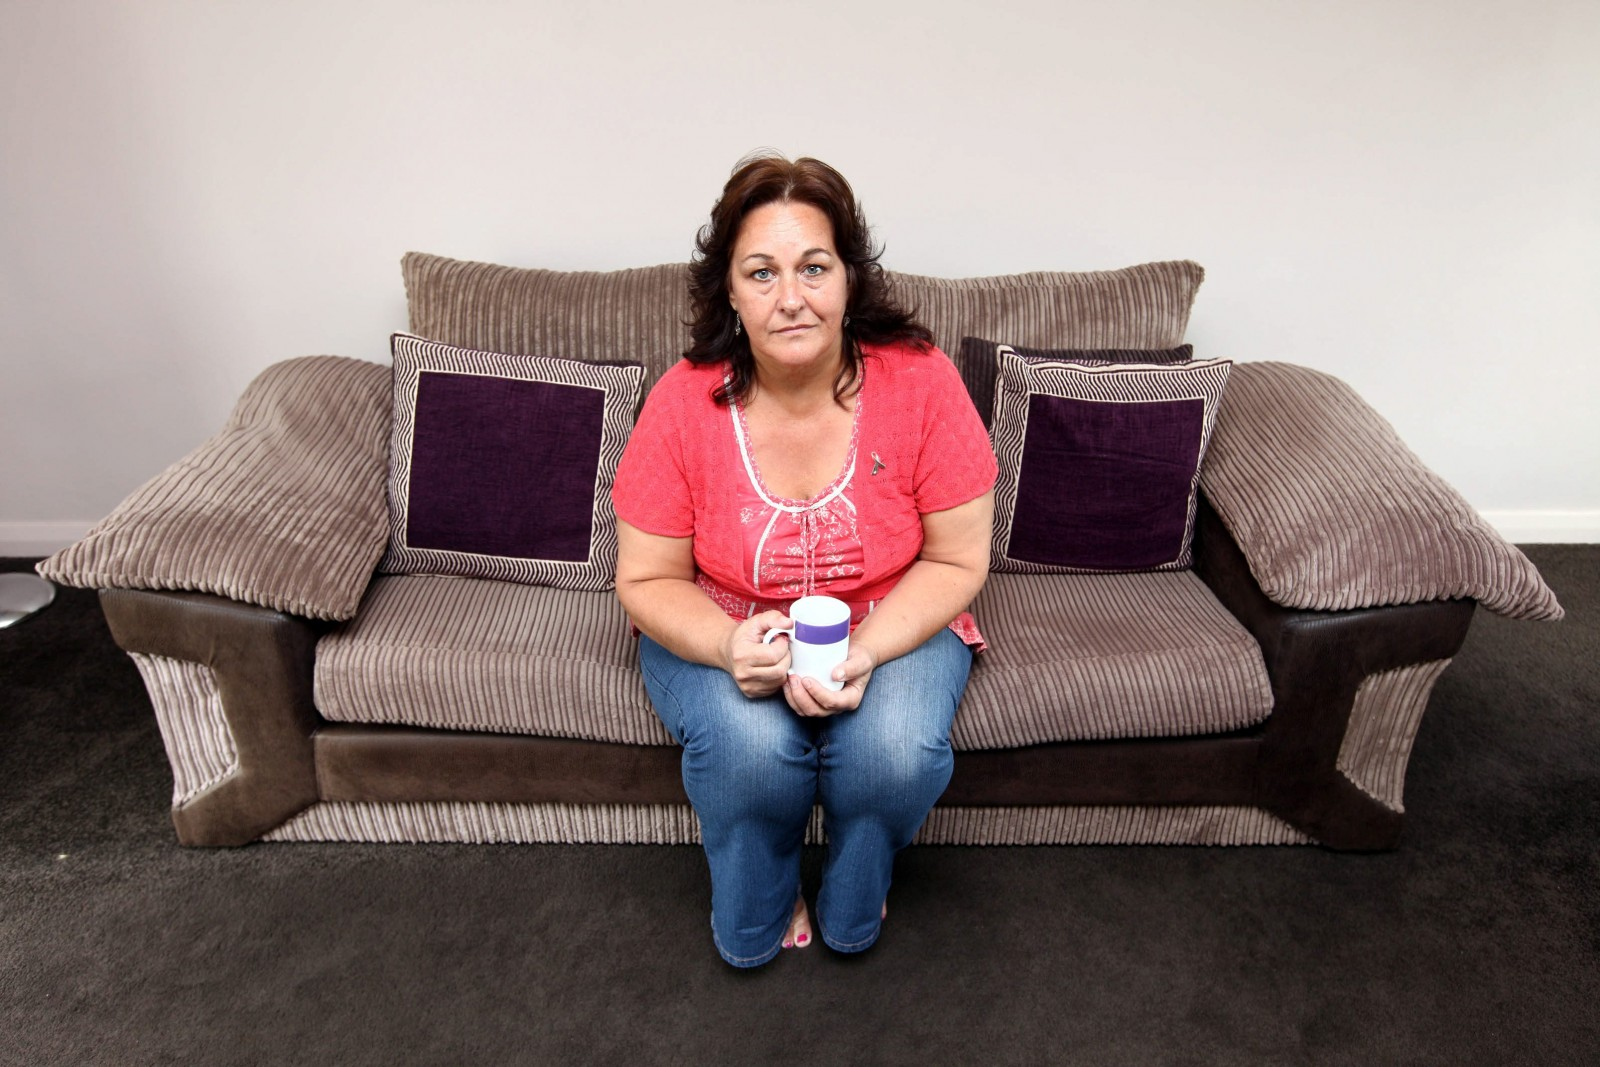 Agoraphobic who hasn't left her home in 20 YEARS faces eviction